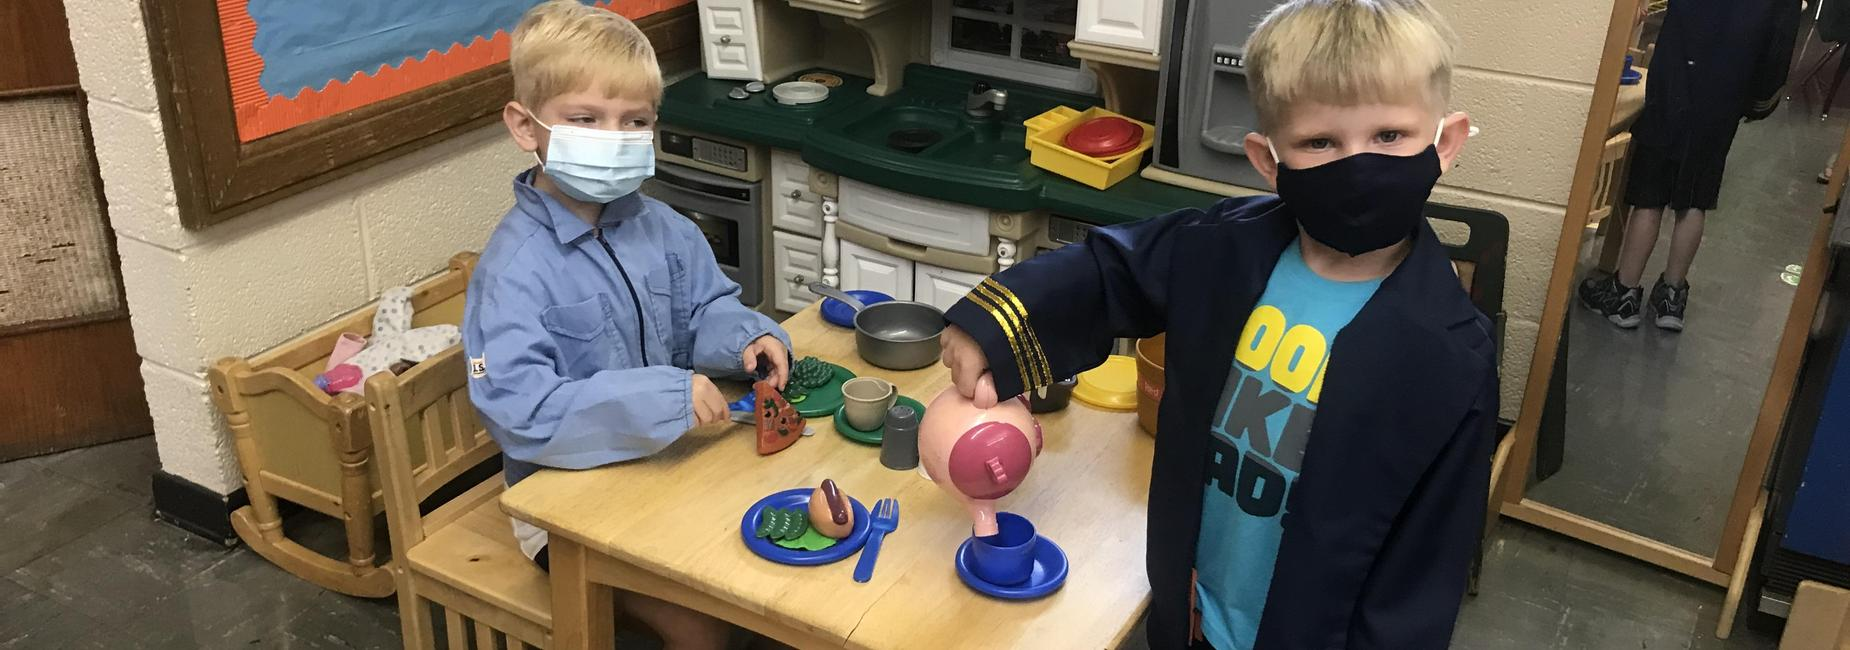 Sugar Grove Elementary Students playing in home center station